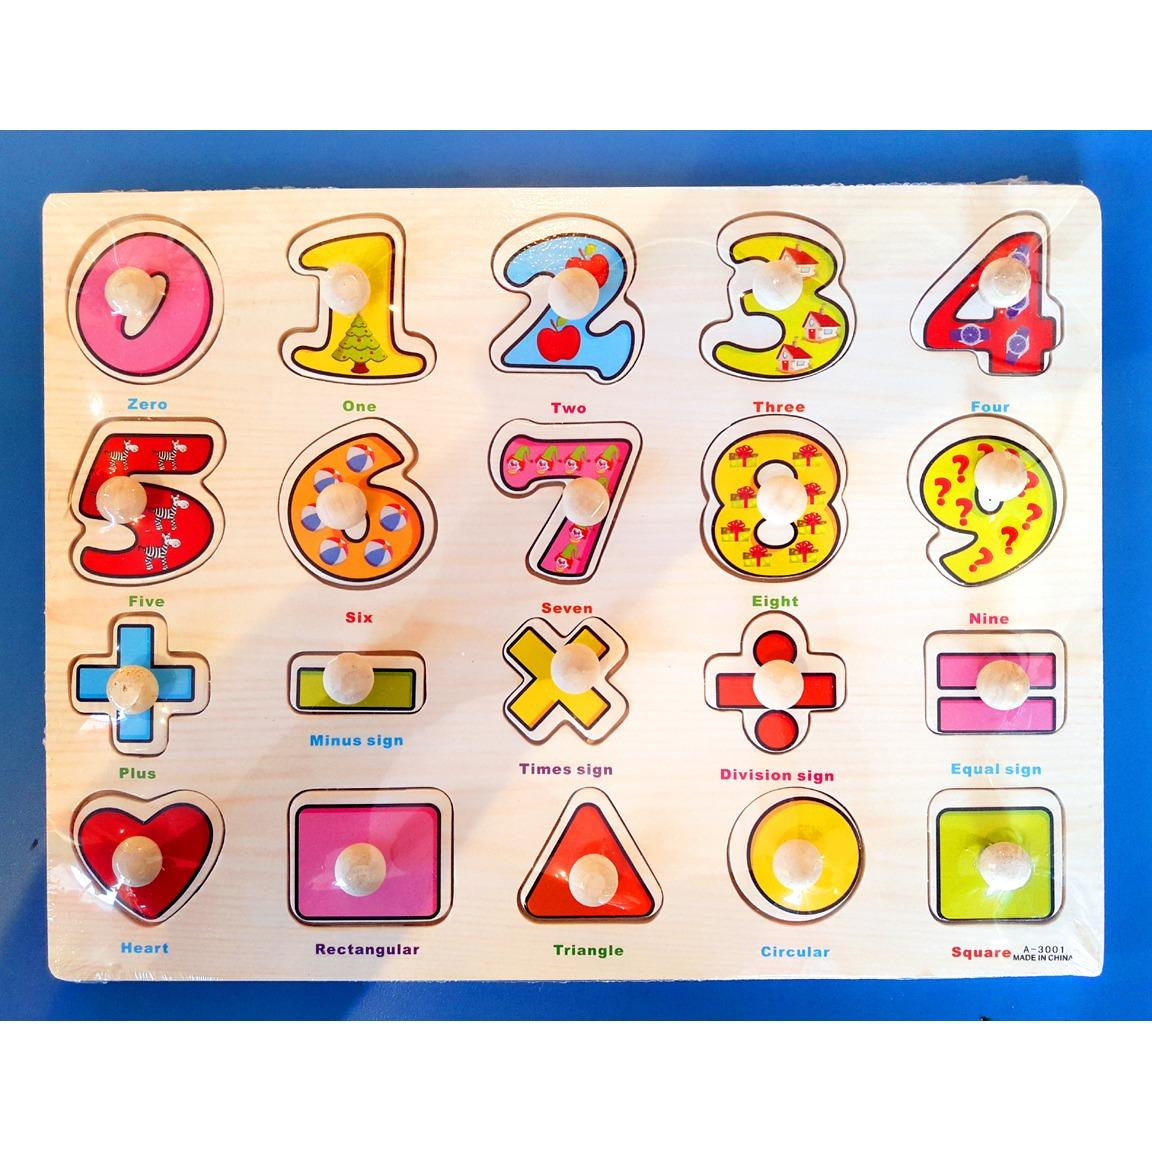 Wooden Inset Pegged Puzzle Board Numbers And Shapes Educational And Therapeutic Toy For Kids By Christine Gutierrez-Eliseo.